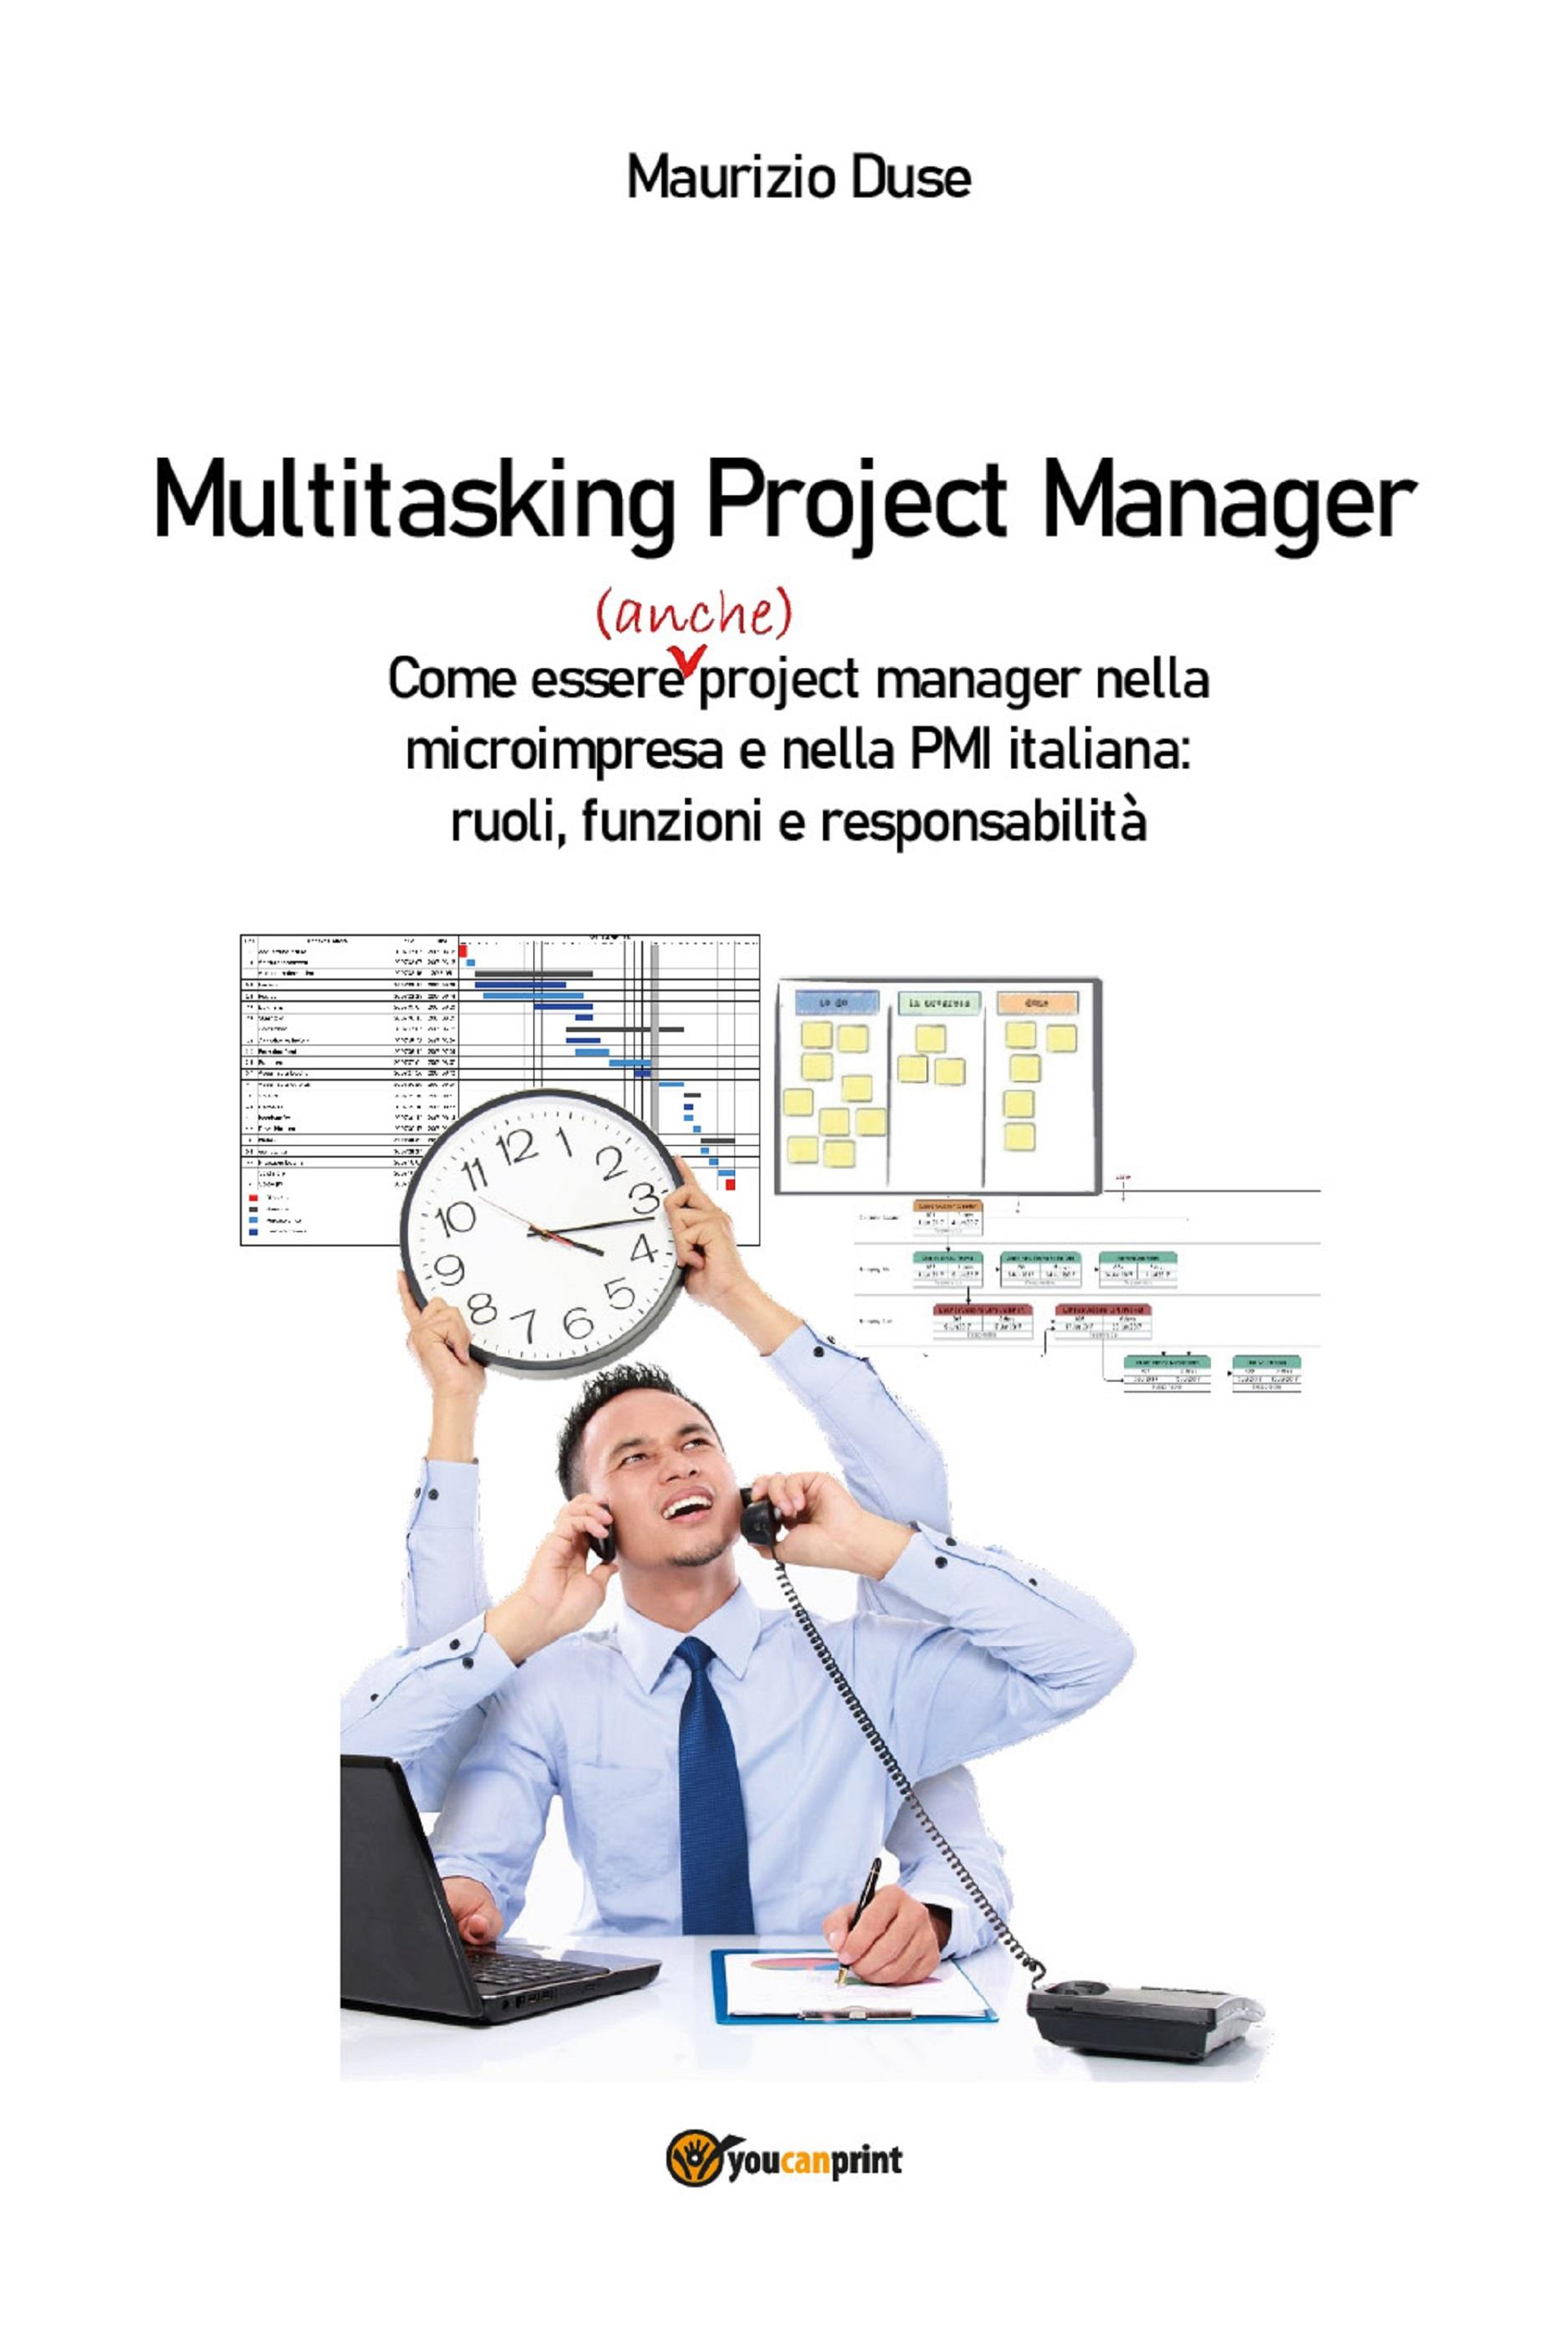 Multitasking Project Manager